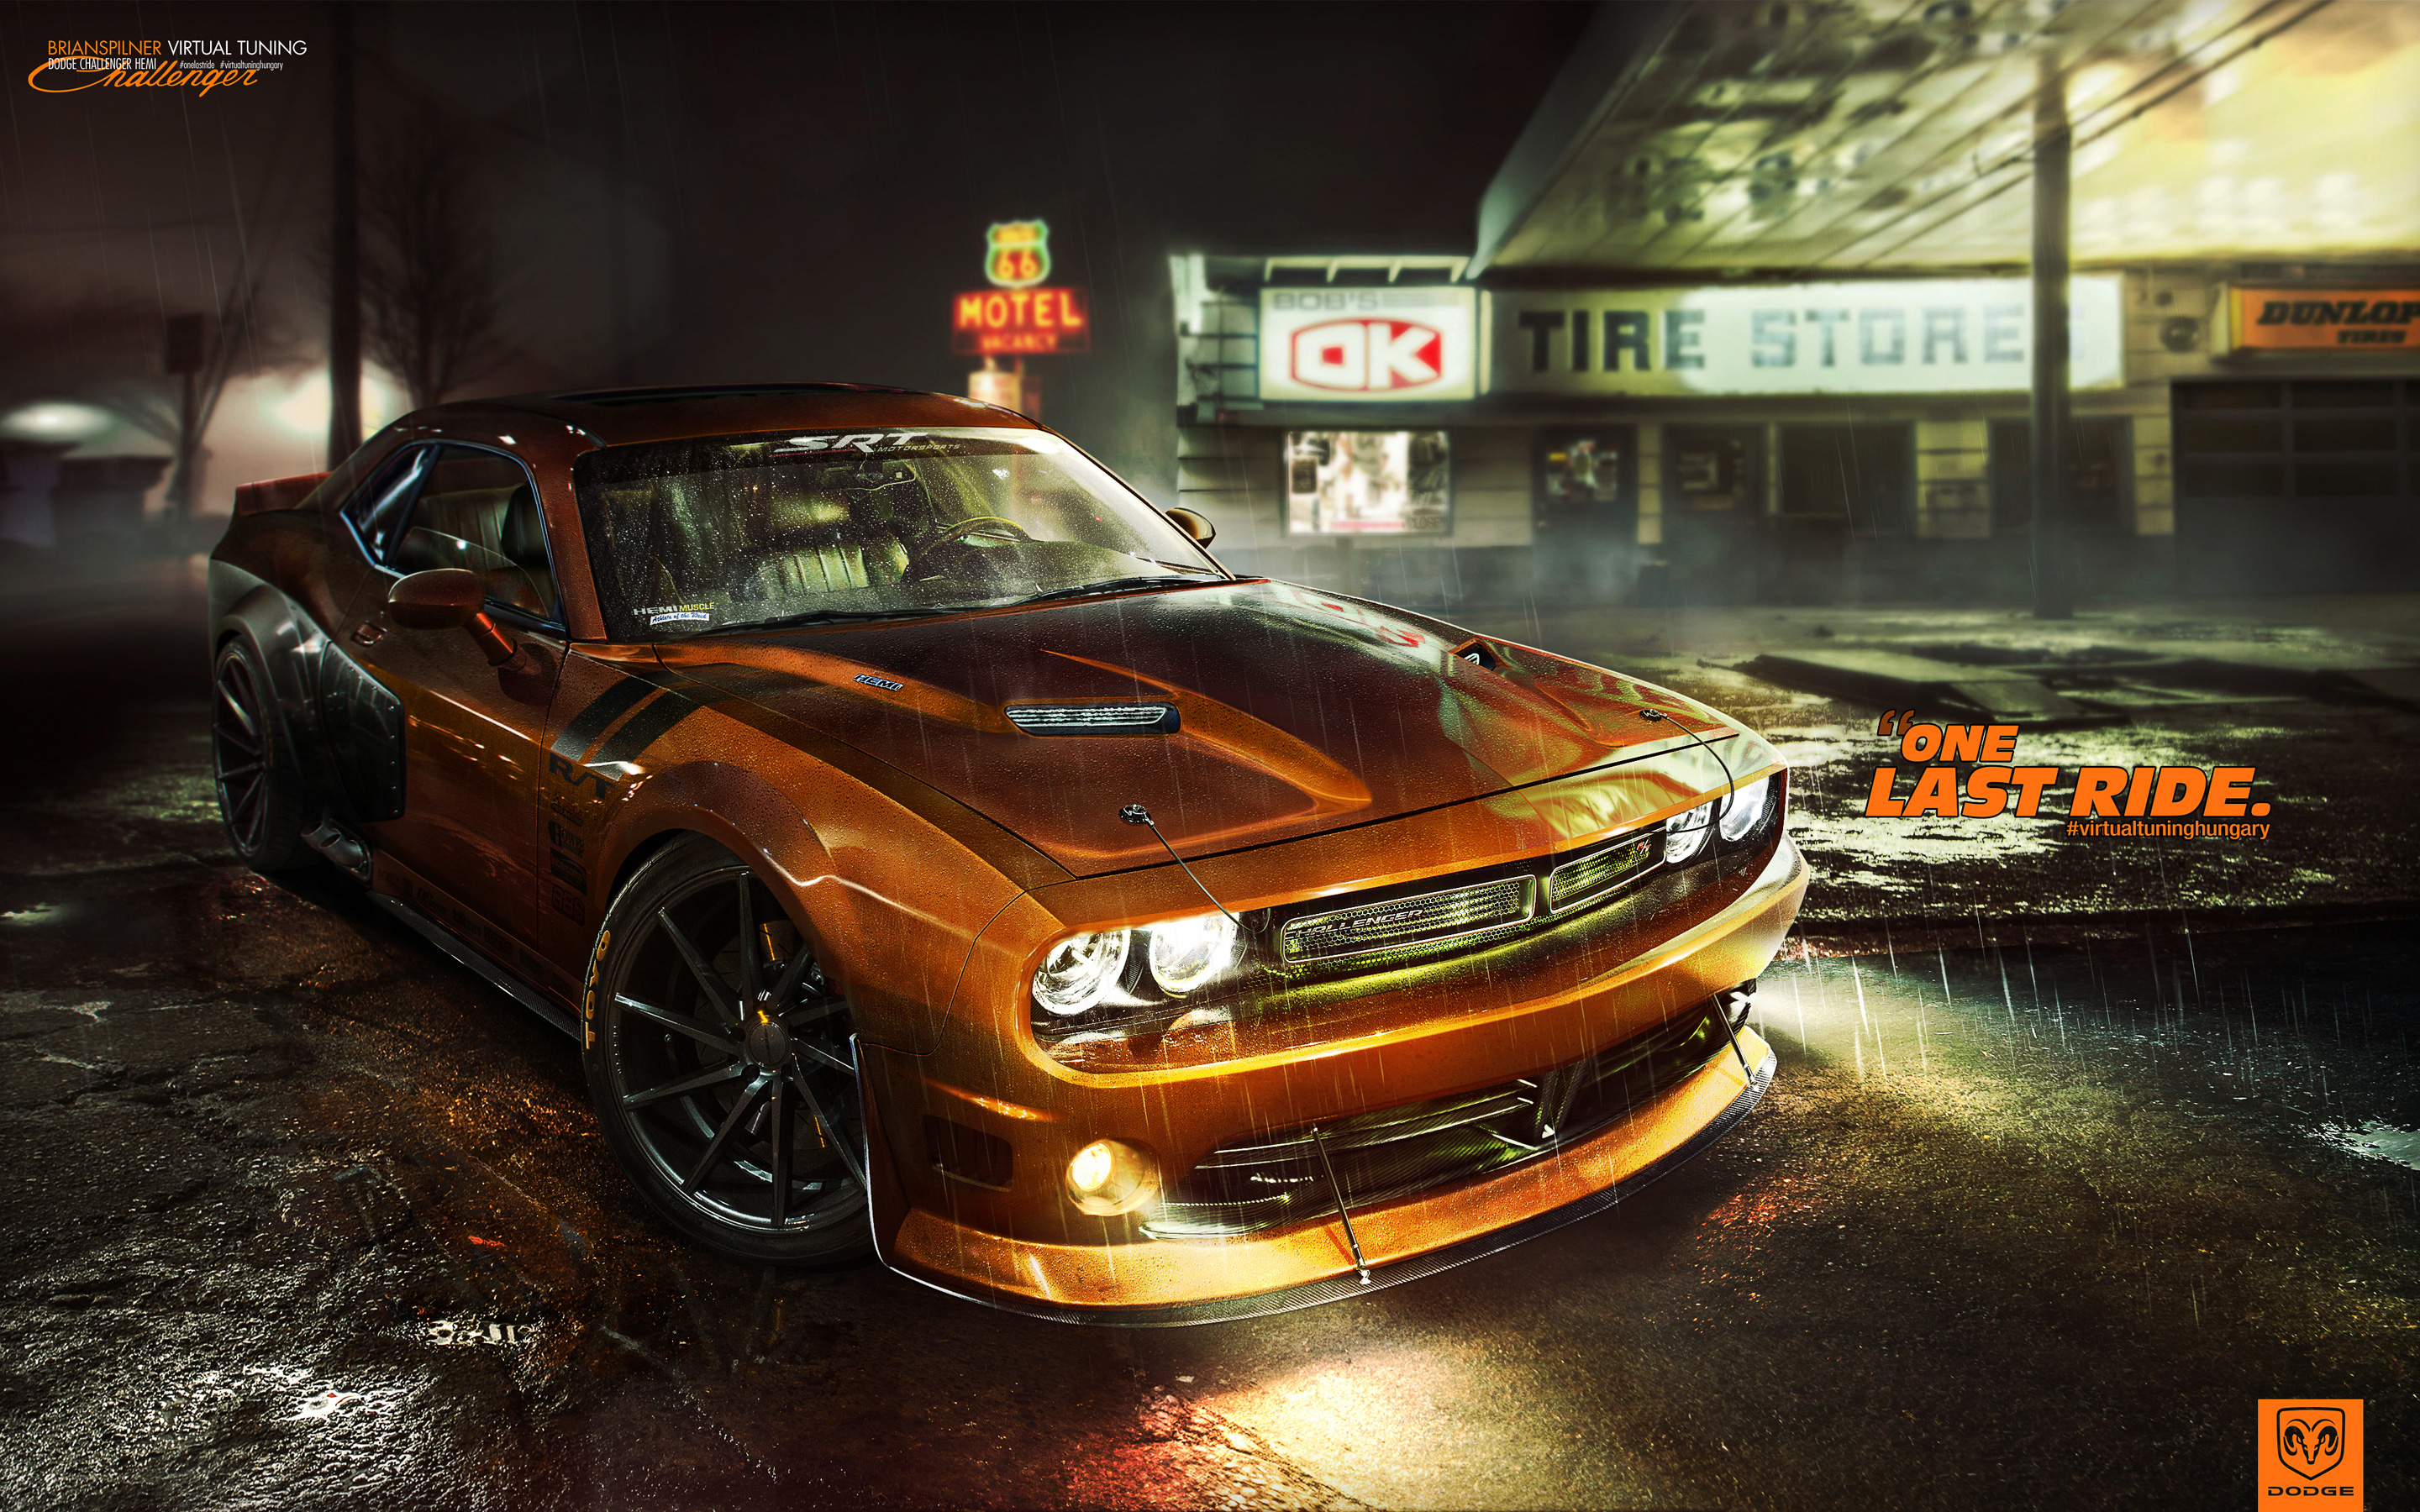 Dodge 4k Wallpapers For Your Desktop Or Mobile Screen Free And Easy To Download